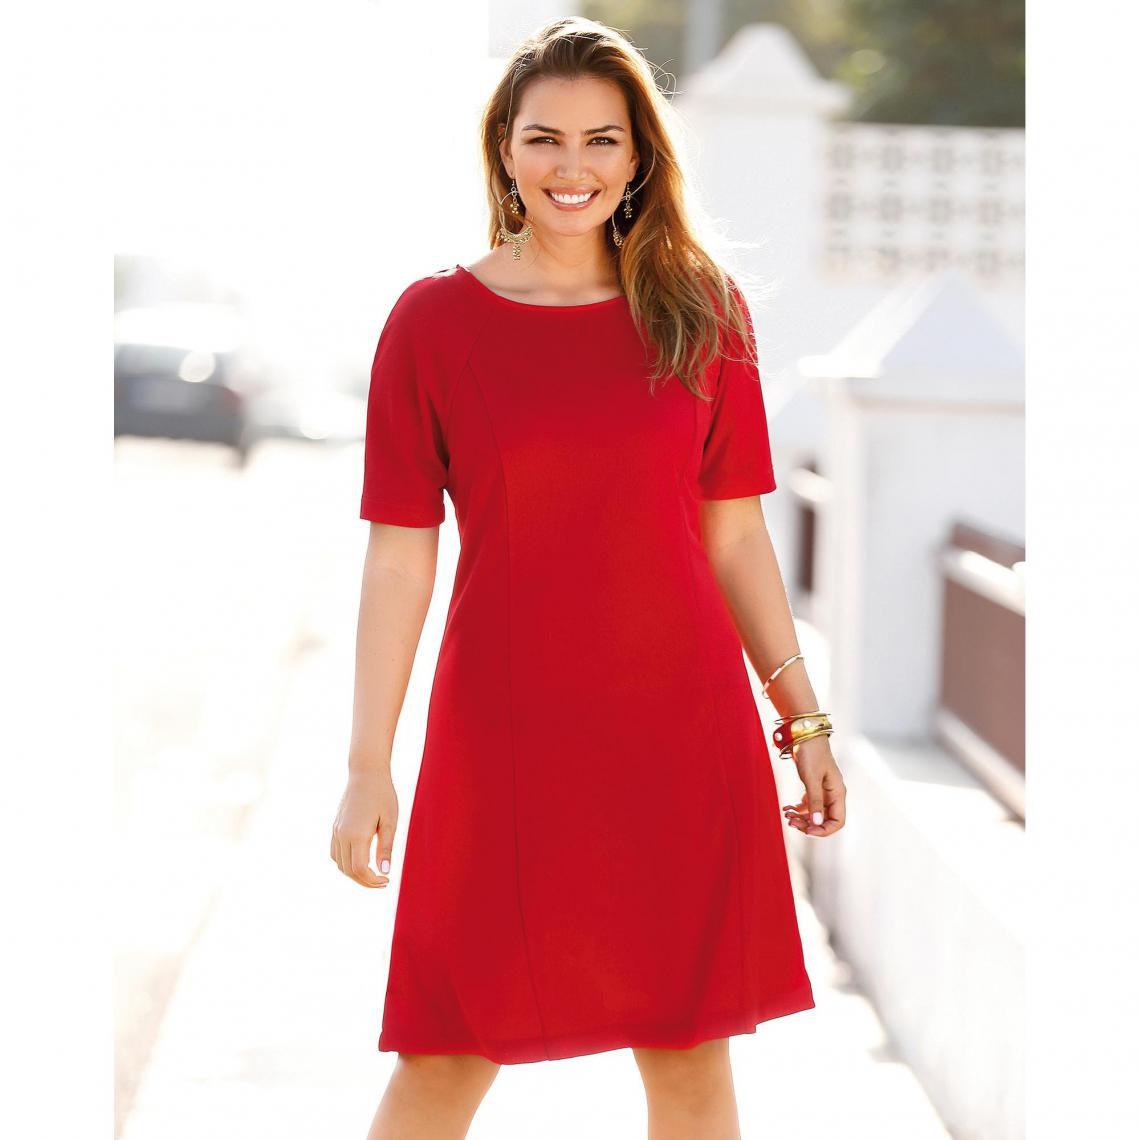 Robe Unie Cintree Evasee Manches Aux Coudes Femme Rouge 3 Suisses